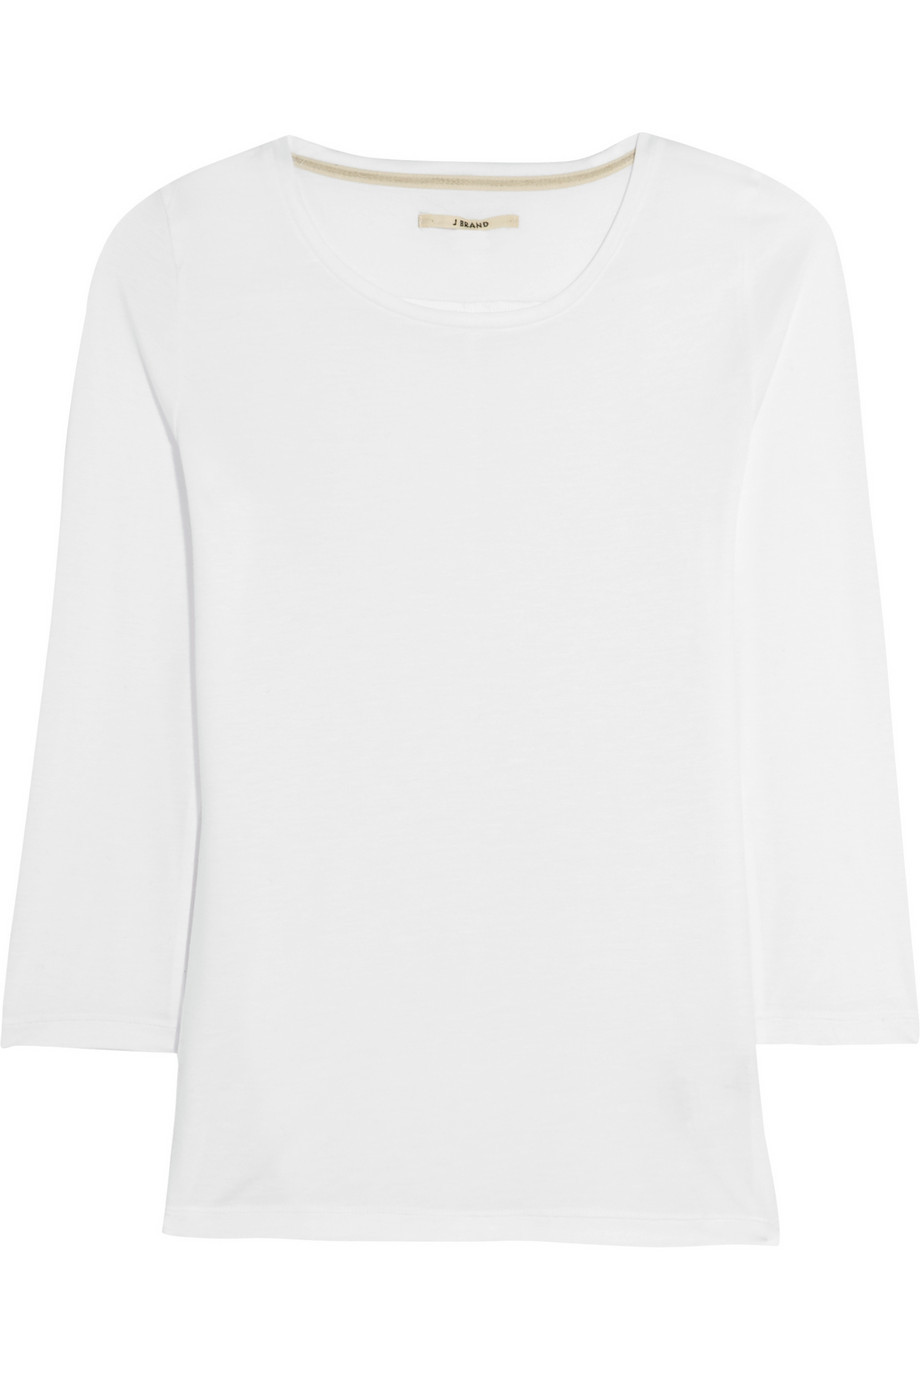 Sophie Stretch Jersey Top White - neckline: round neck; pattern: plain; predominant colour: white; occasions: casual; length: standard; style: top; fibres: cotton - stretch; fit: straight cut; sleeve length: 3/4 length; sleeve style: standard; pattern type: fabric; texture group: jersey - stretchy/drapey; season: s/s 2016